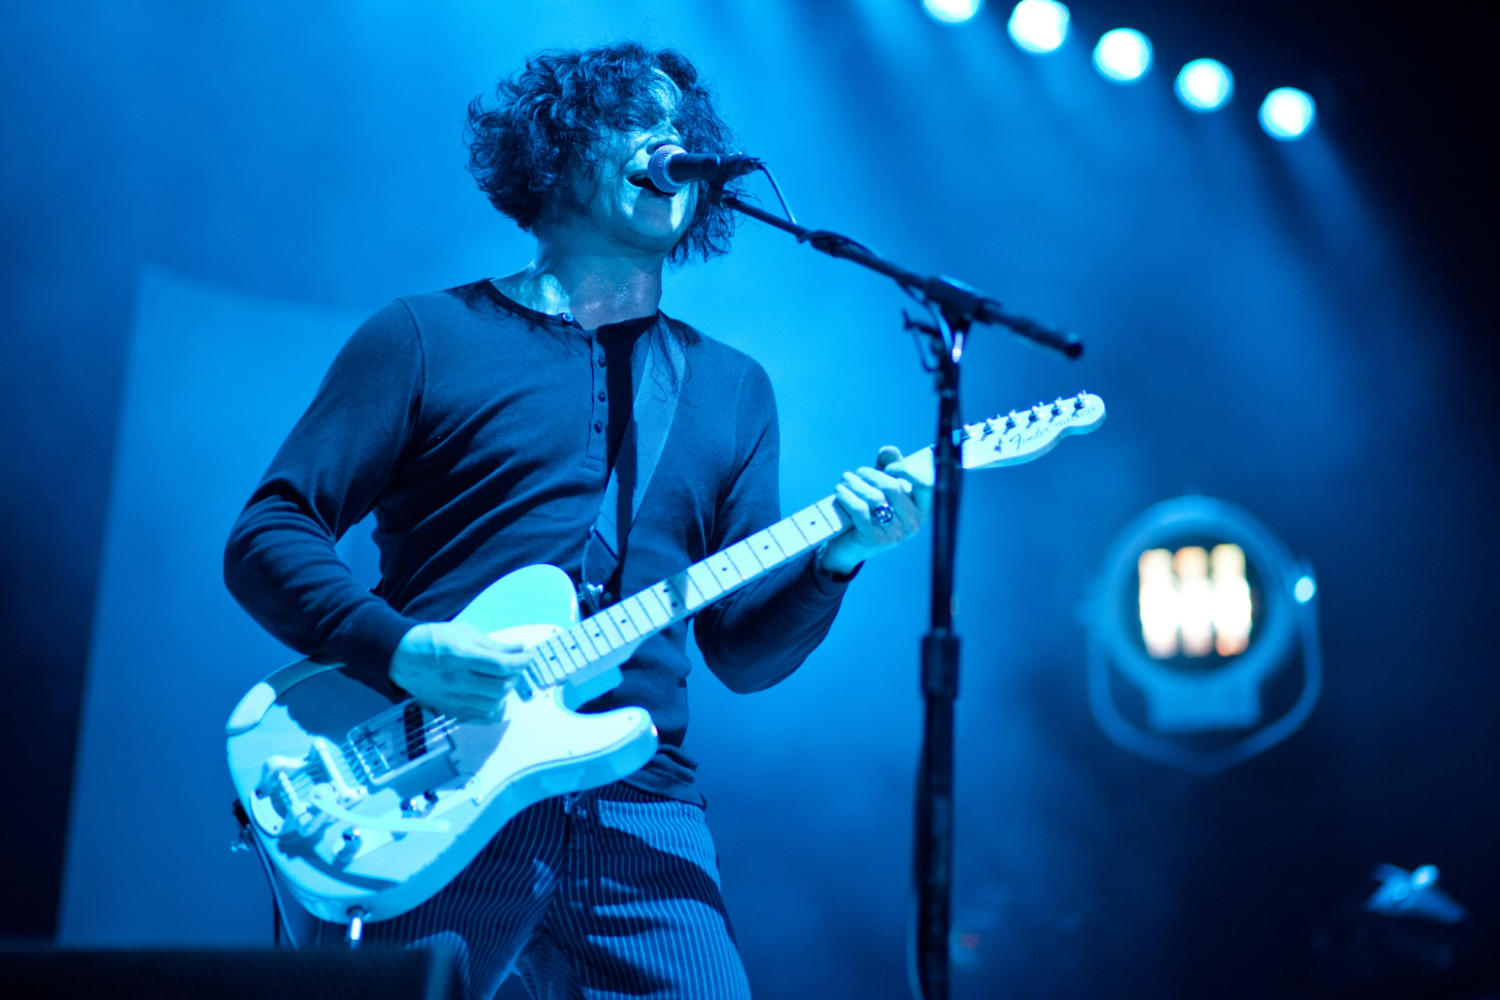 Jack White curates Led Zeppelin playlist